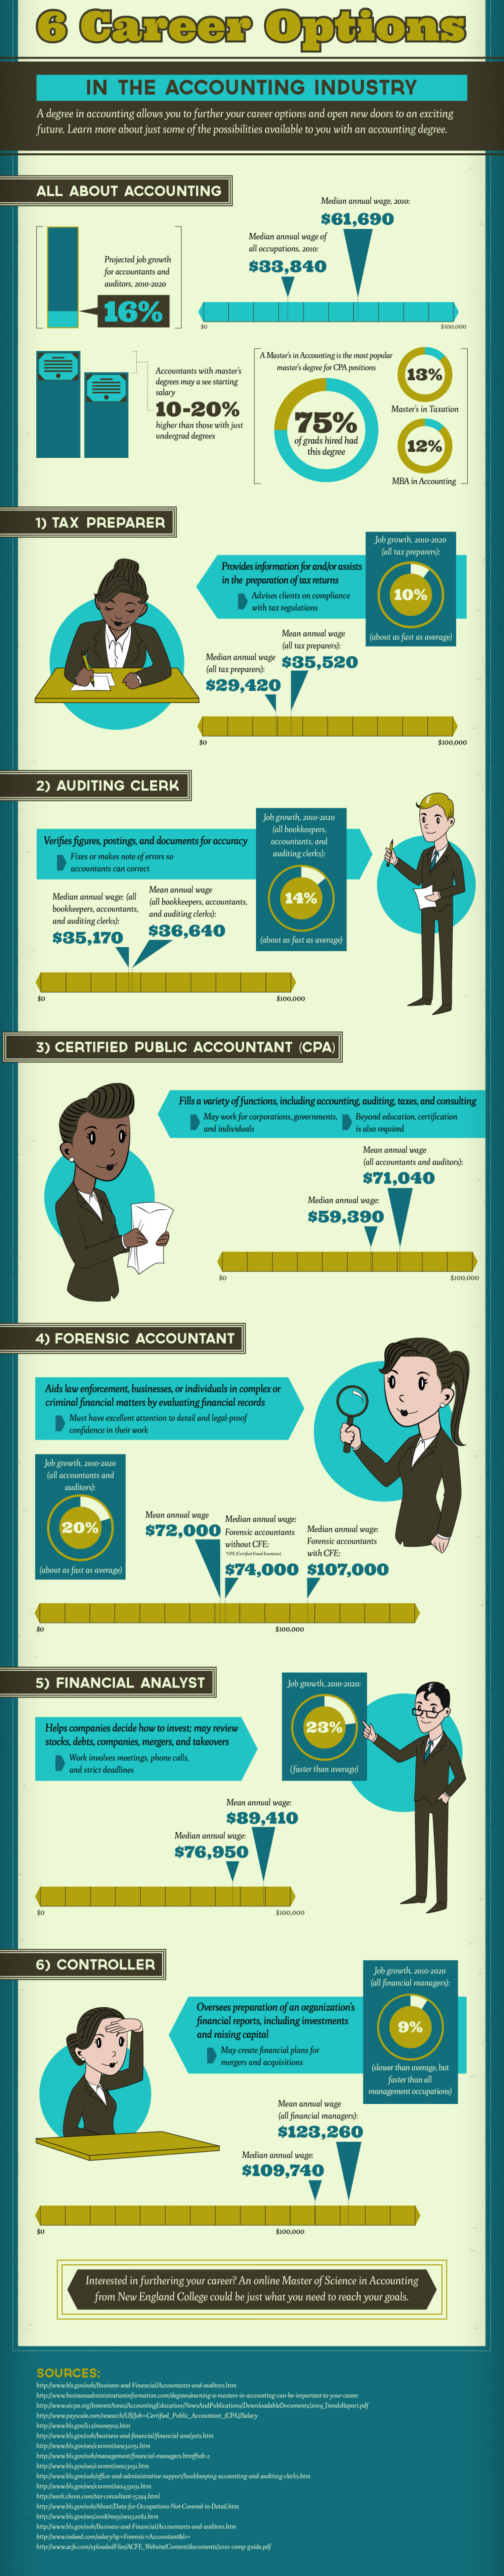 6 Career Options in the Accounting Industry Infographic